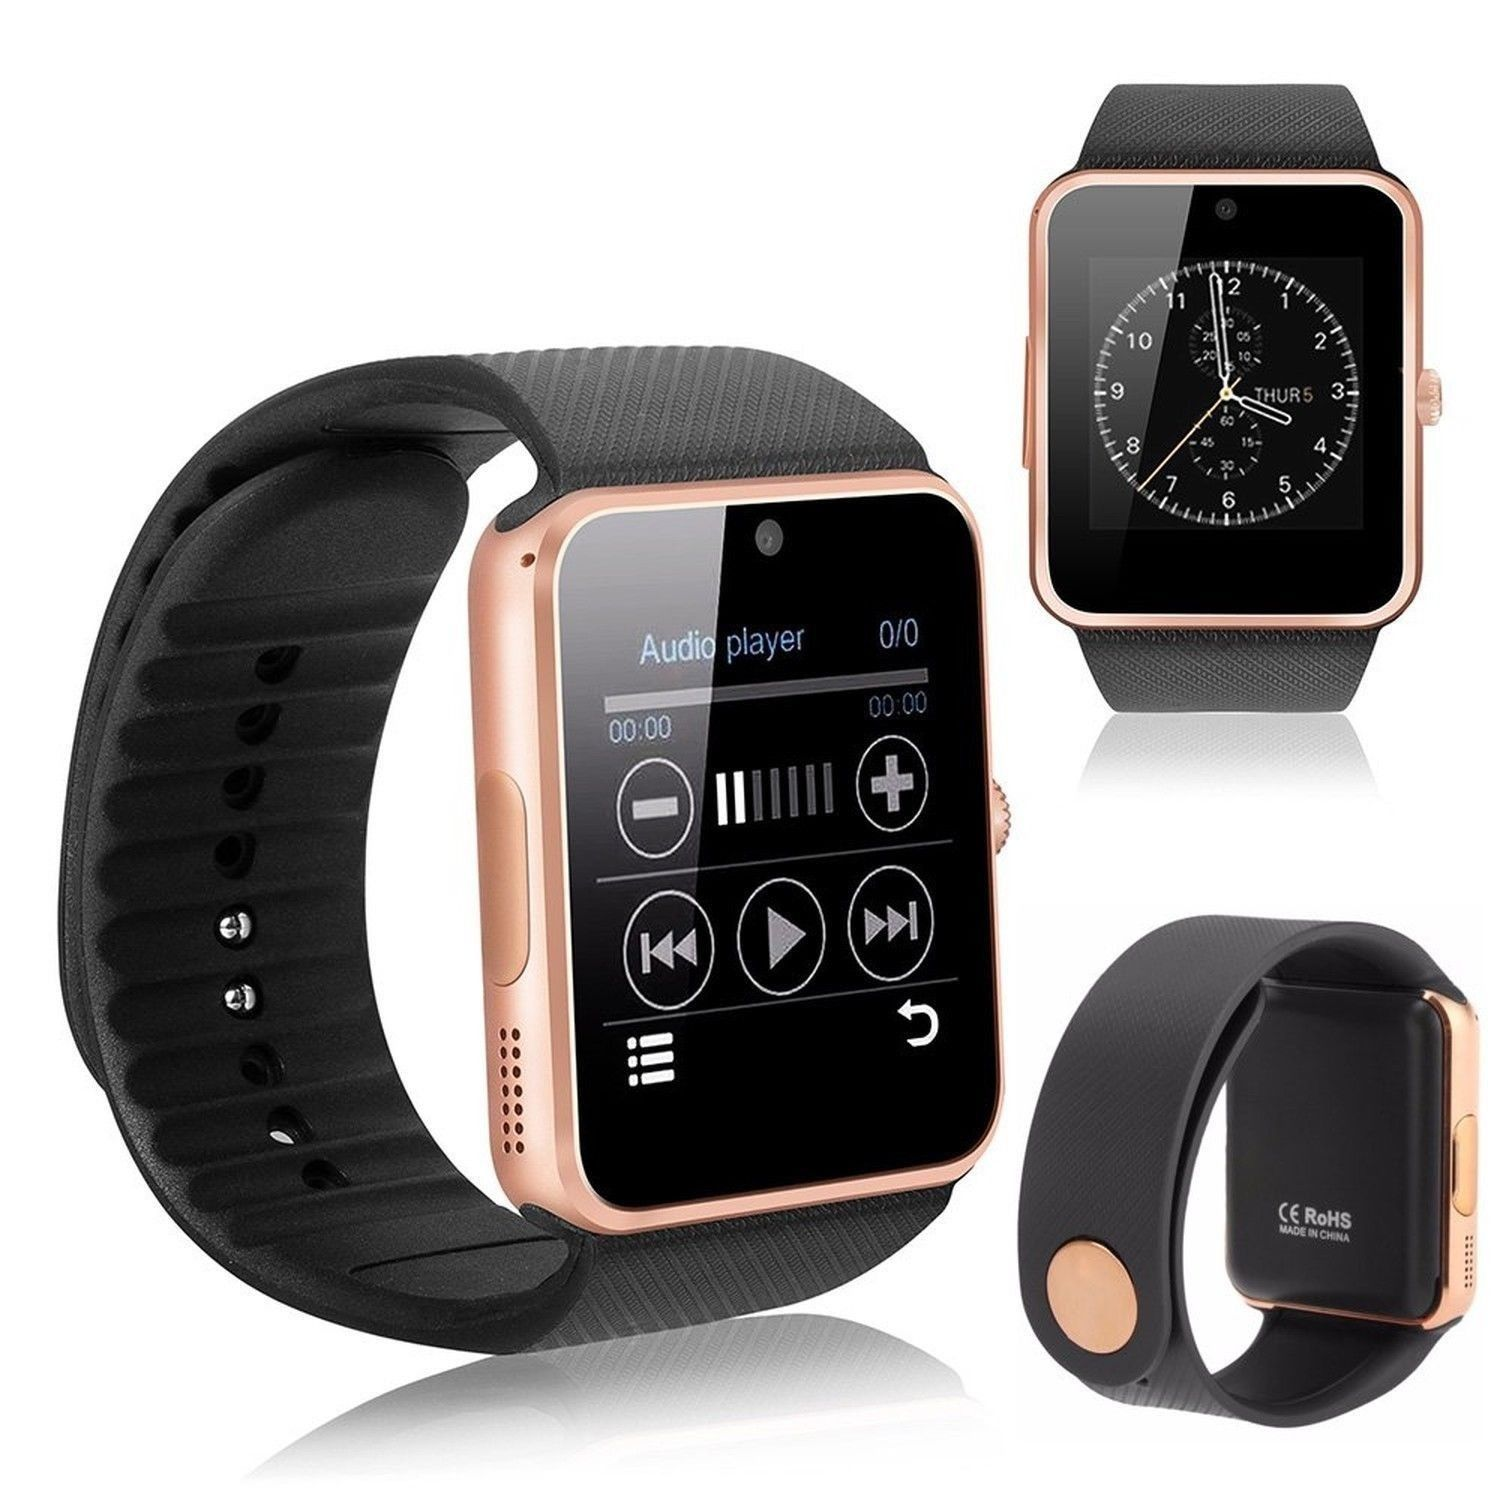 watch img best gift smartwatch cult fans phone powerbank i zens apple of accessories mac guide watches for